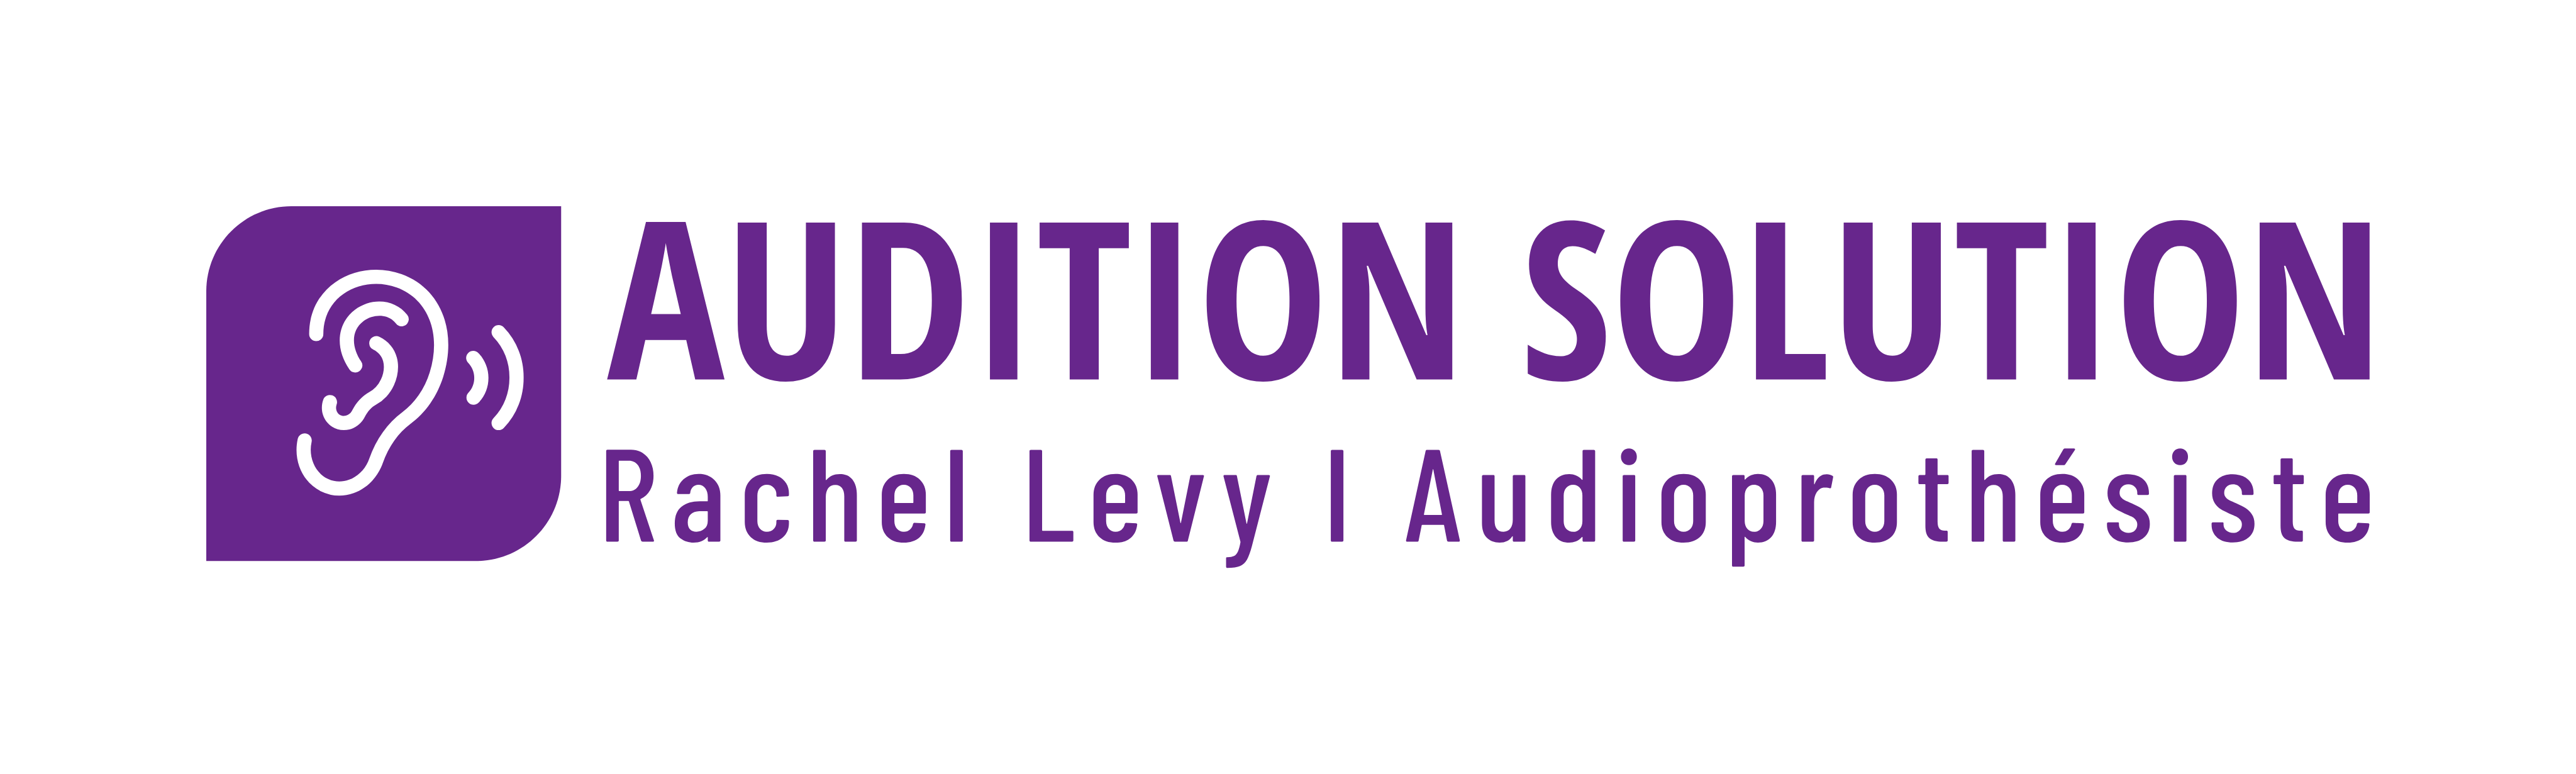 AUDITION SOLUTION